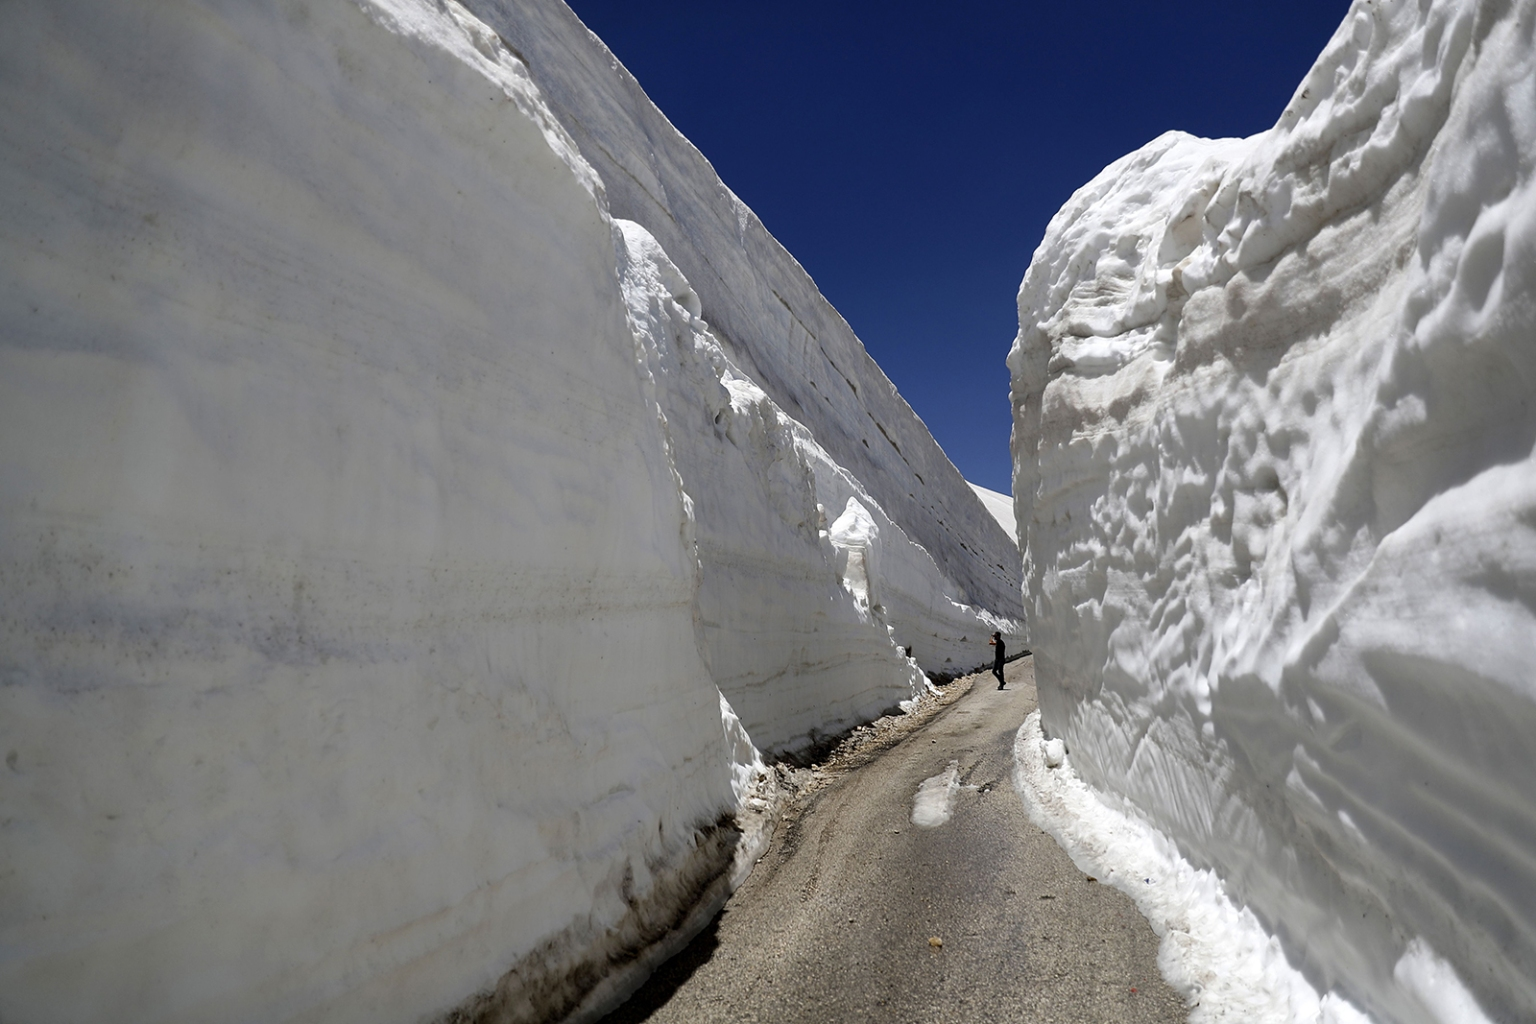 People take pictures on a road surrounded by walls of snow in the northern Lebanese village of Ainata al-Arz on May 28.  The road has been recently serviced to allow cars to access it. JOSEPH EID/AFP/Getty Images